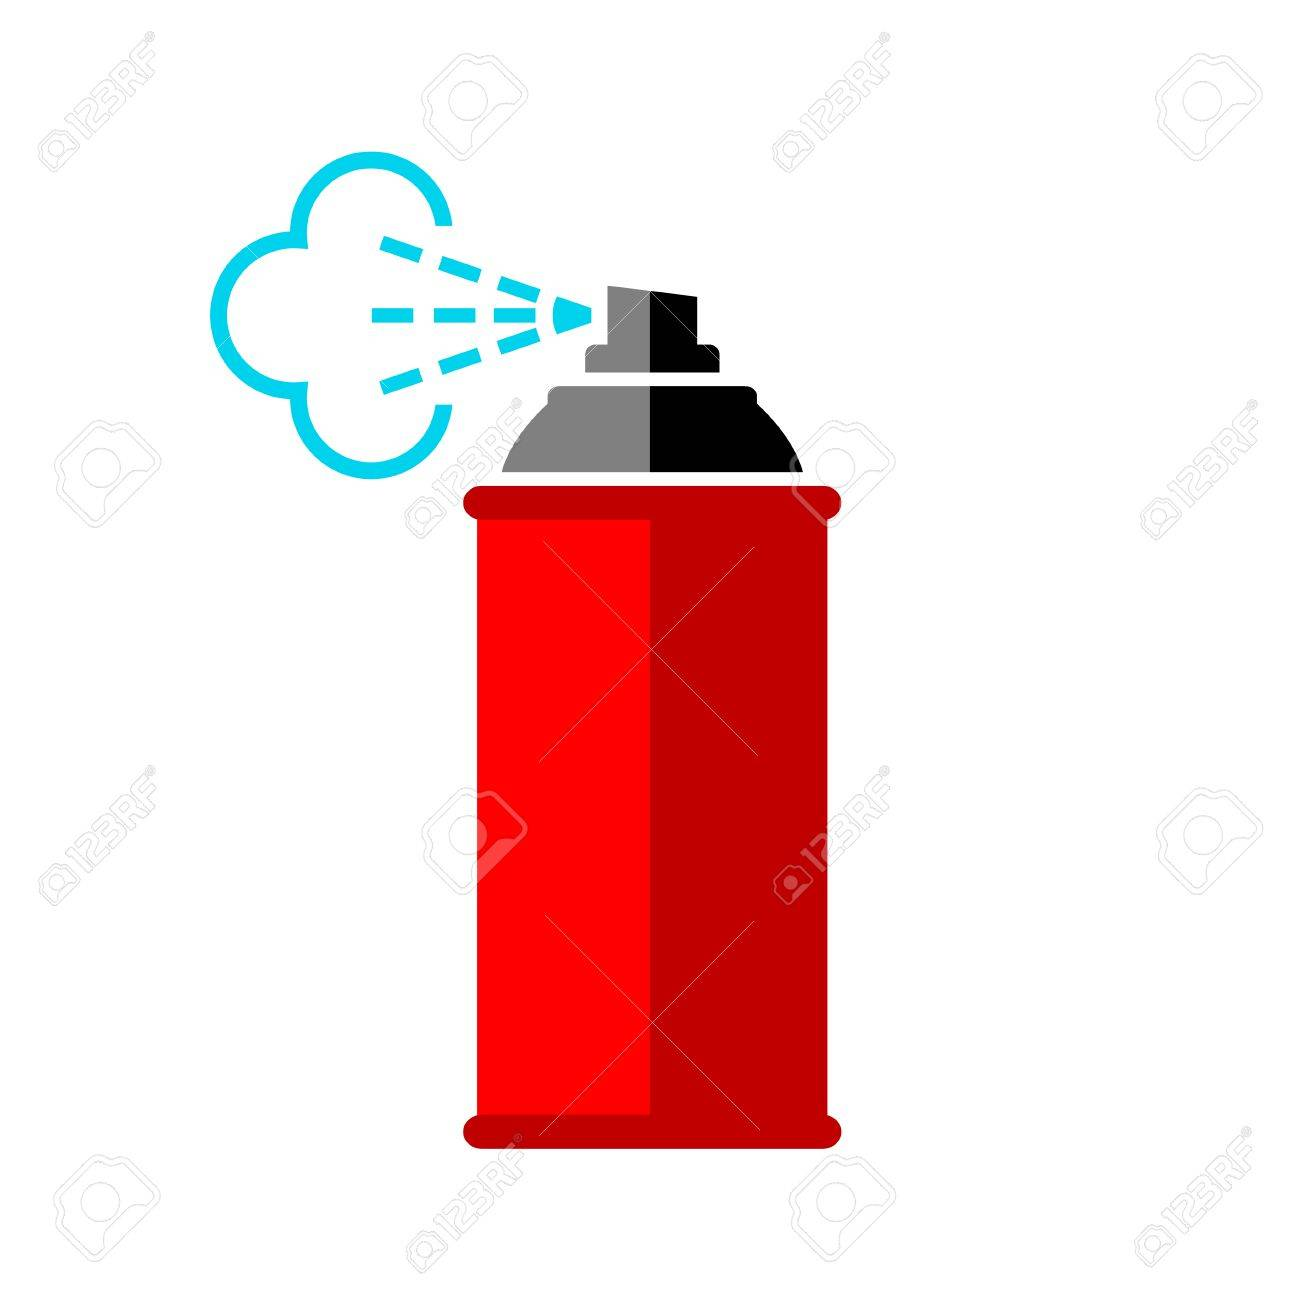 Red spray can icon on white background - 53929075